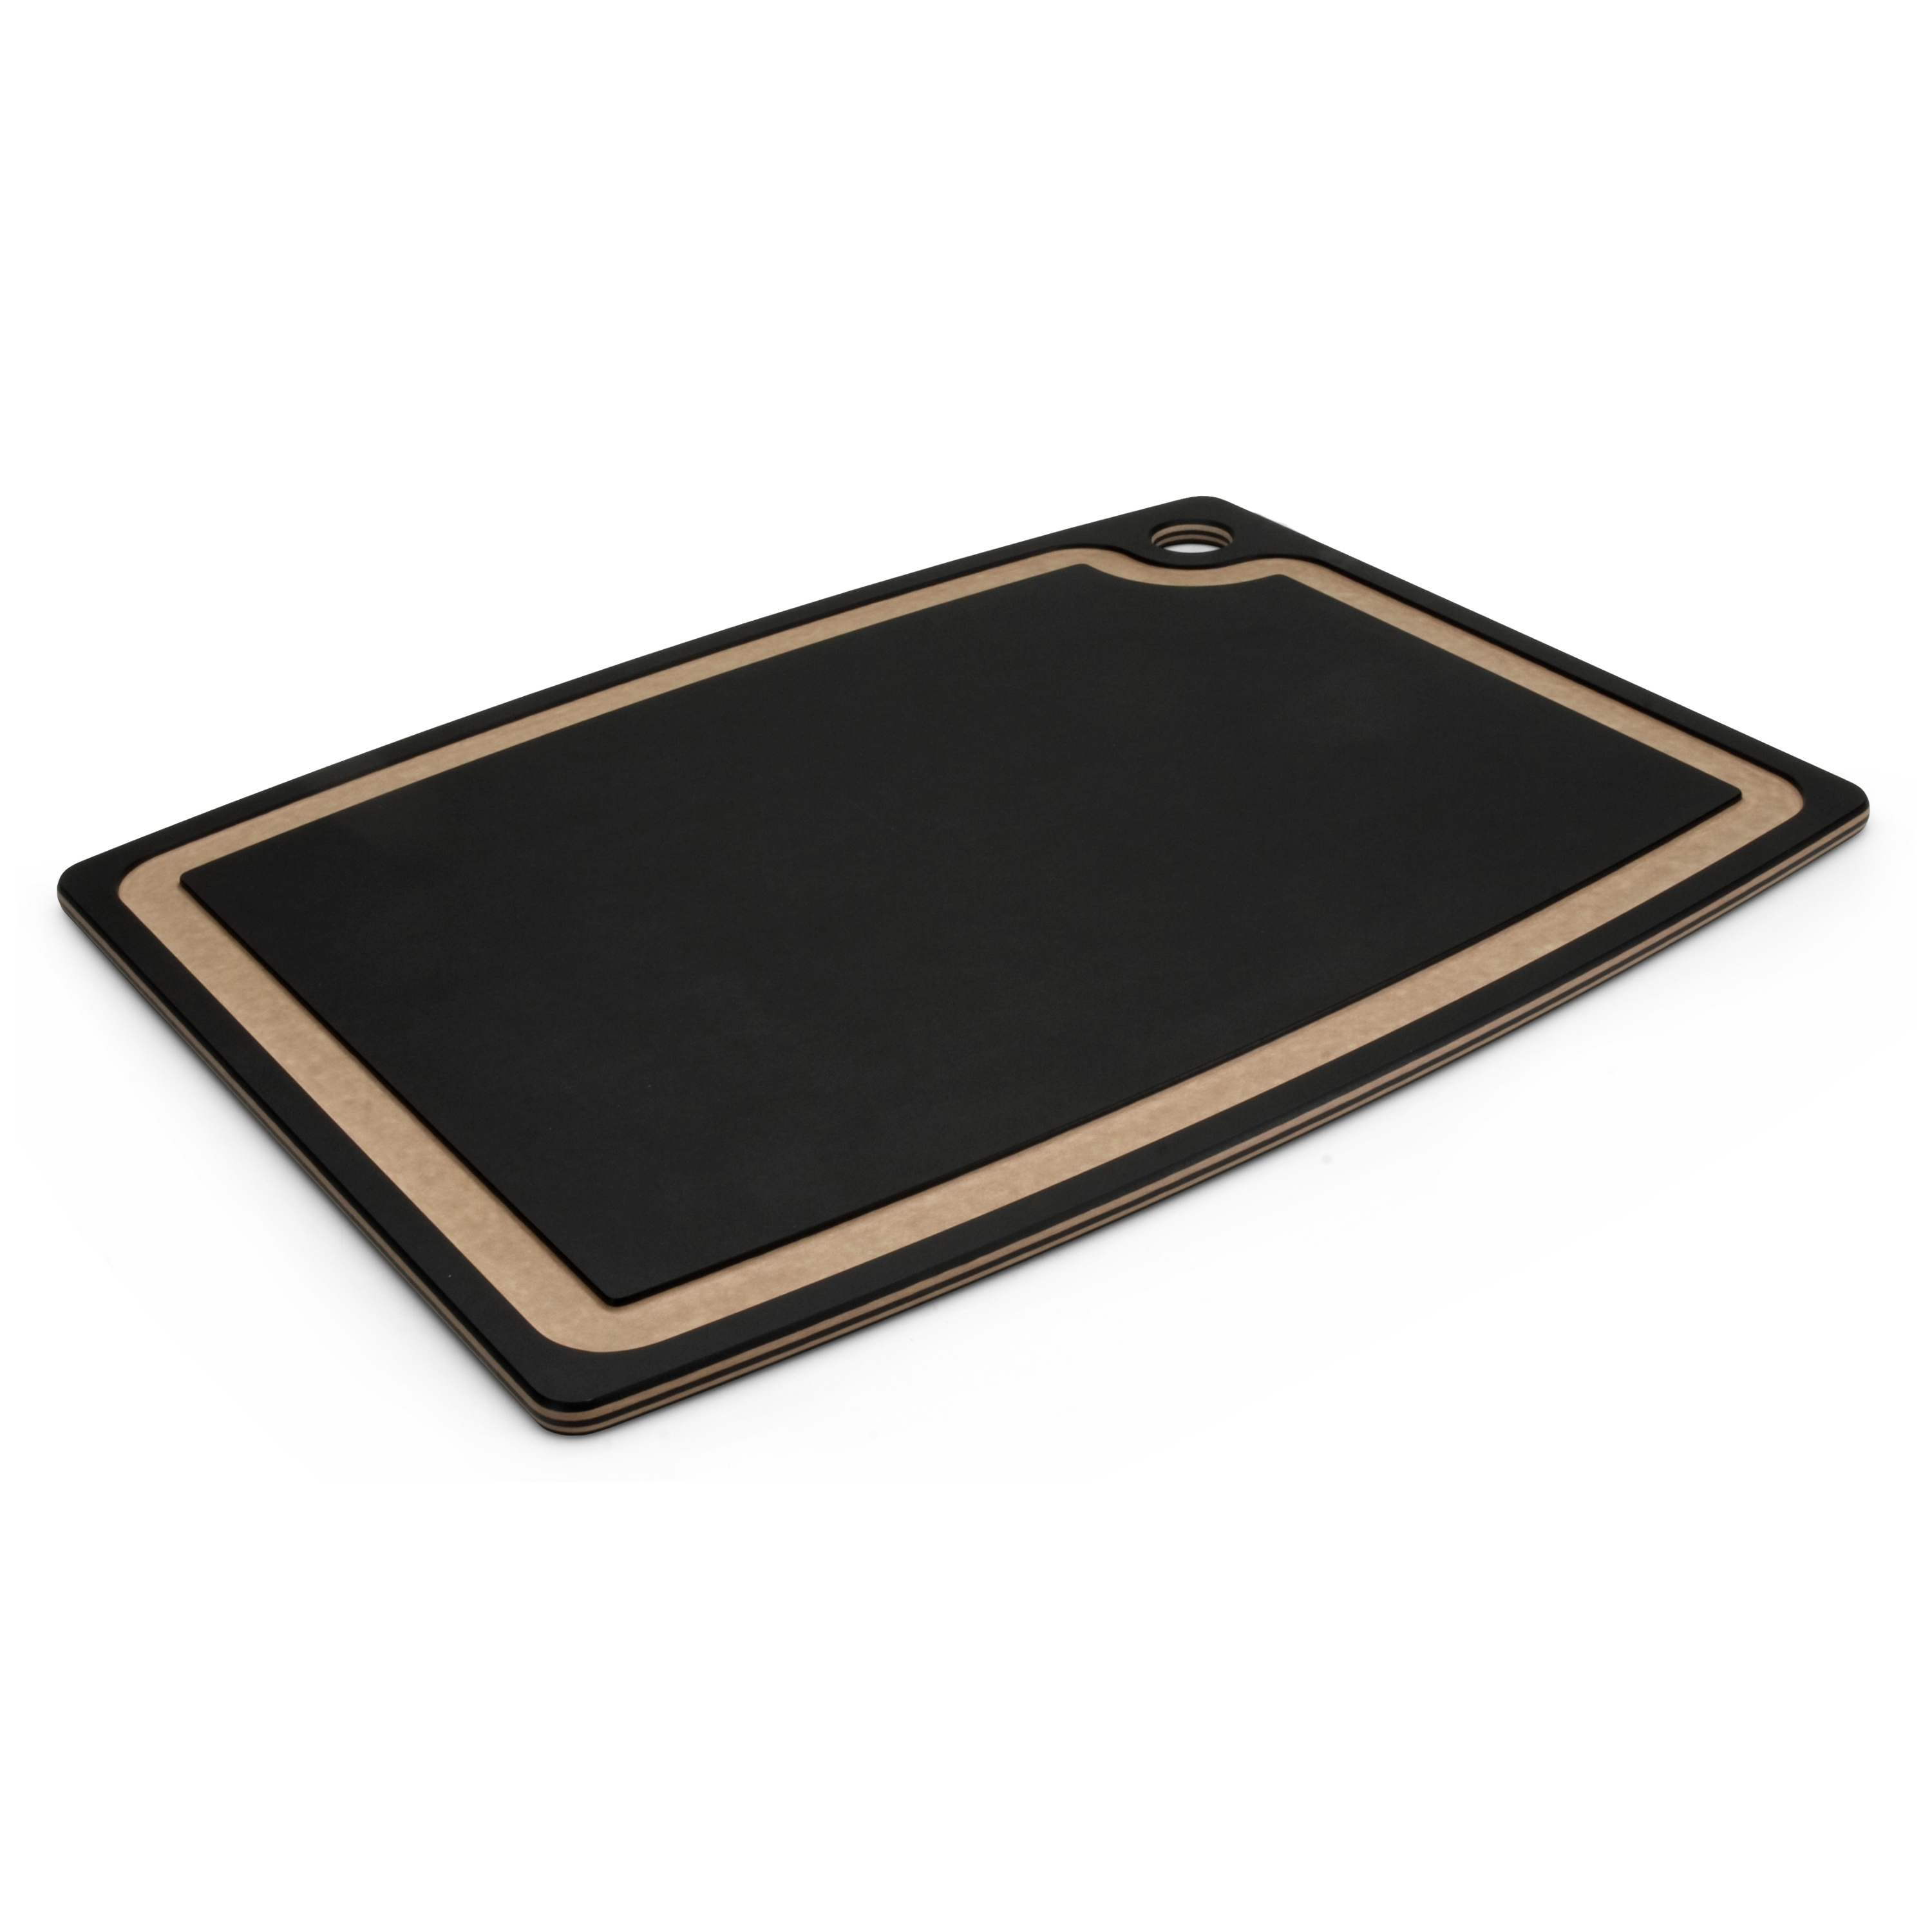 Epicurean Gourmet Series Slate and Natural 17.5 x 13 Inch Cutting Board